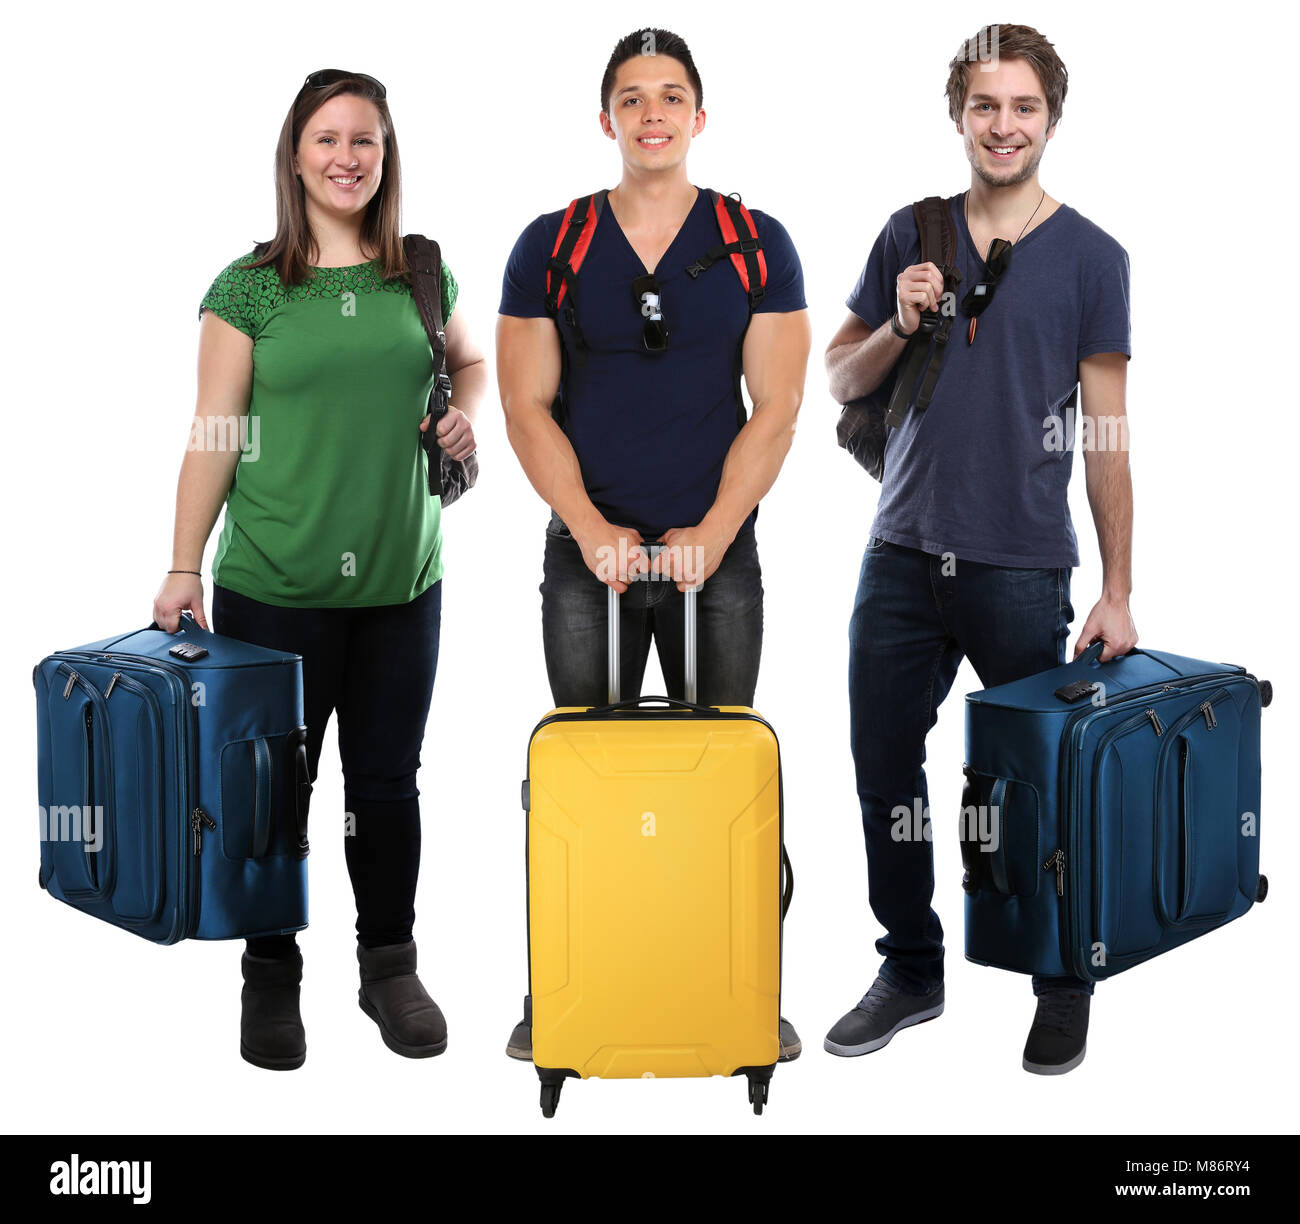 Group of young people vacation holidays luggage bag travel traveling isolated on a white background - Stock Image